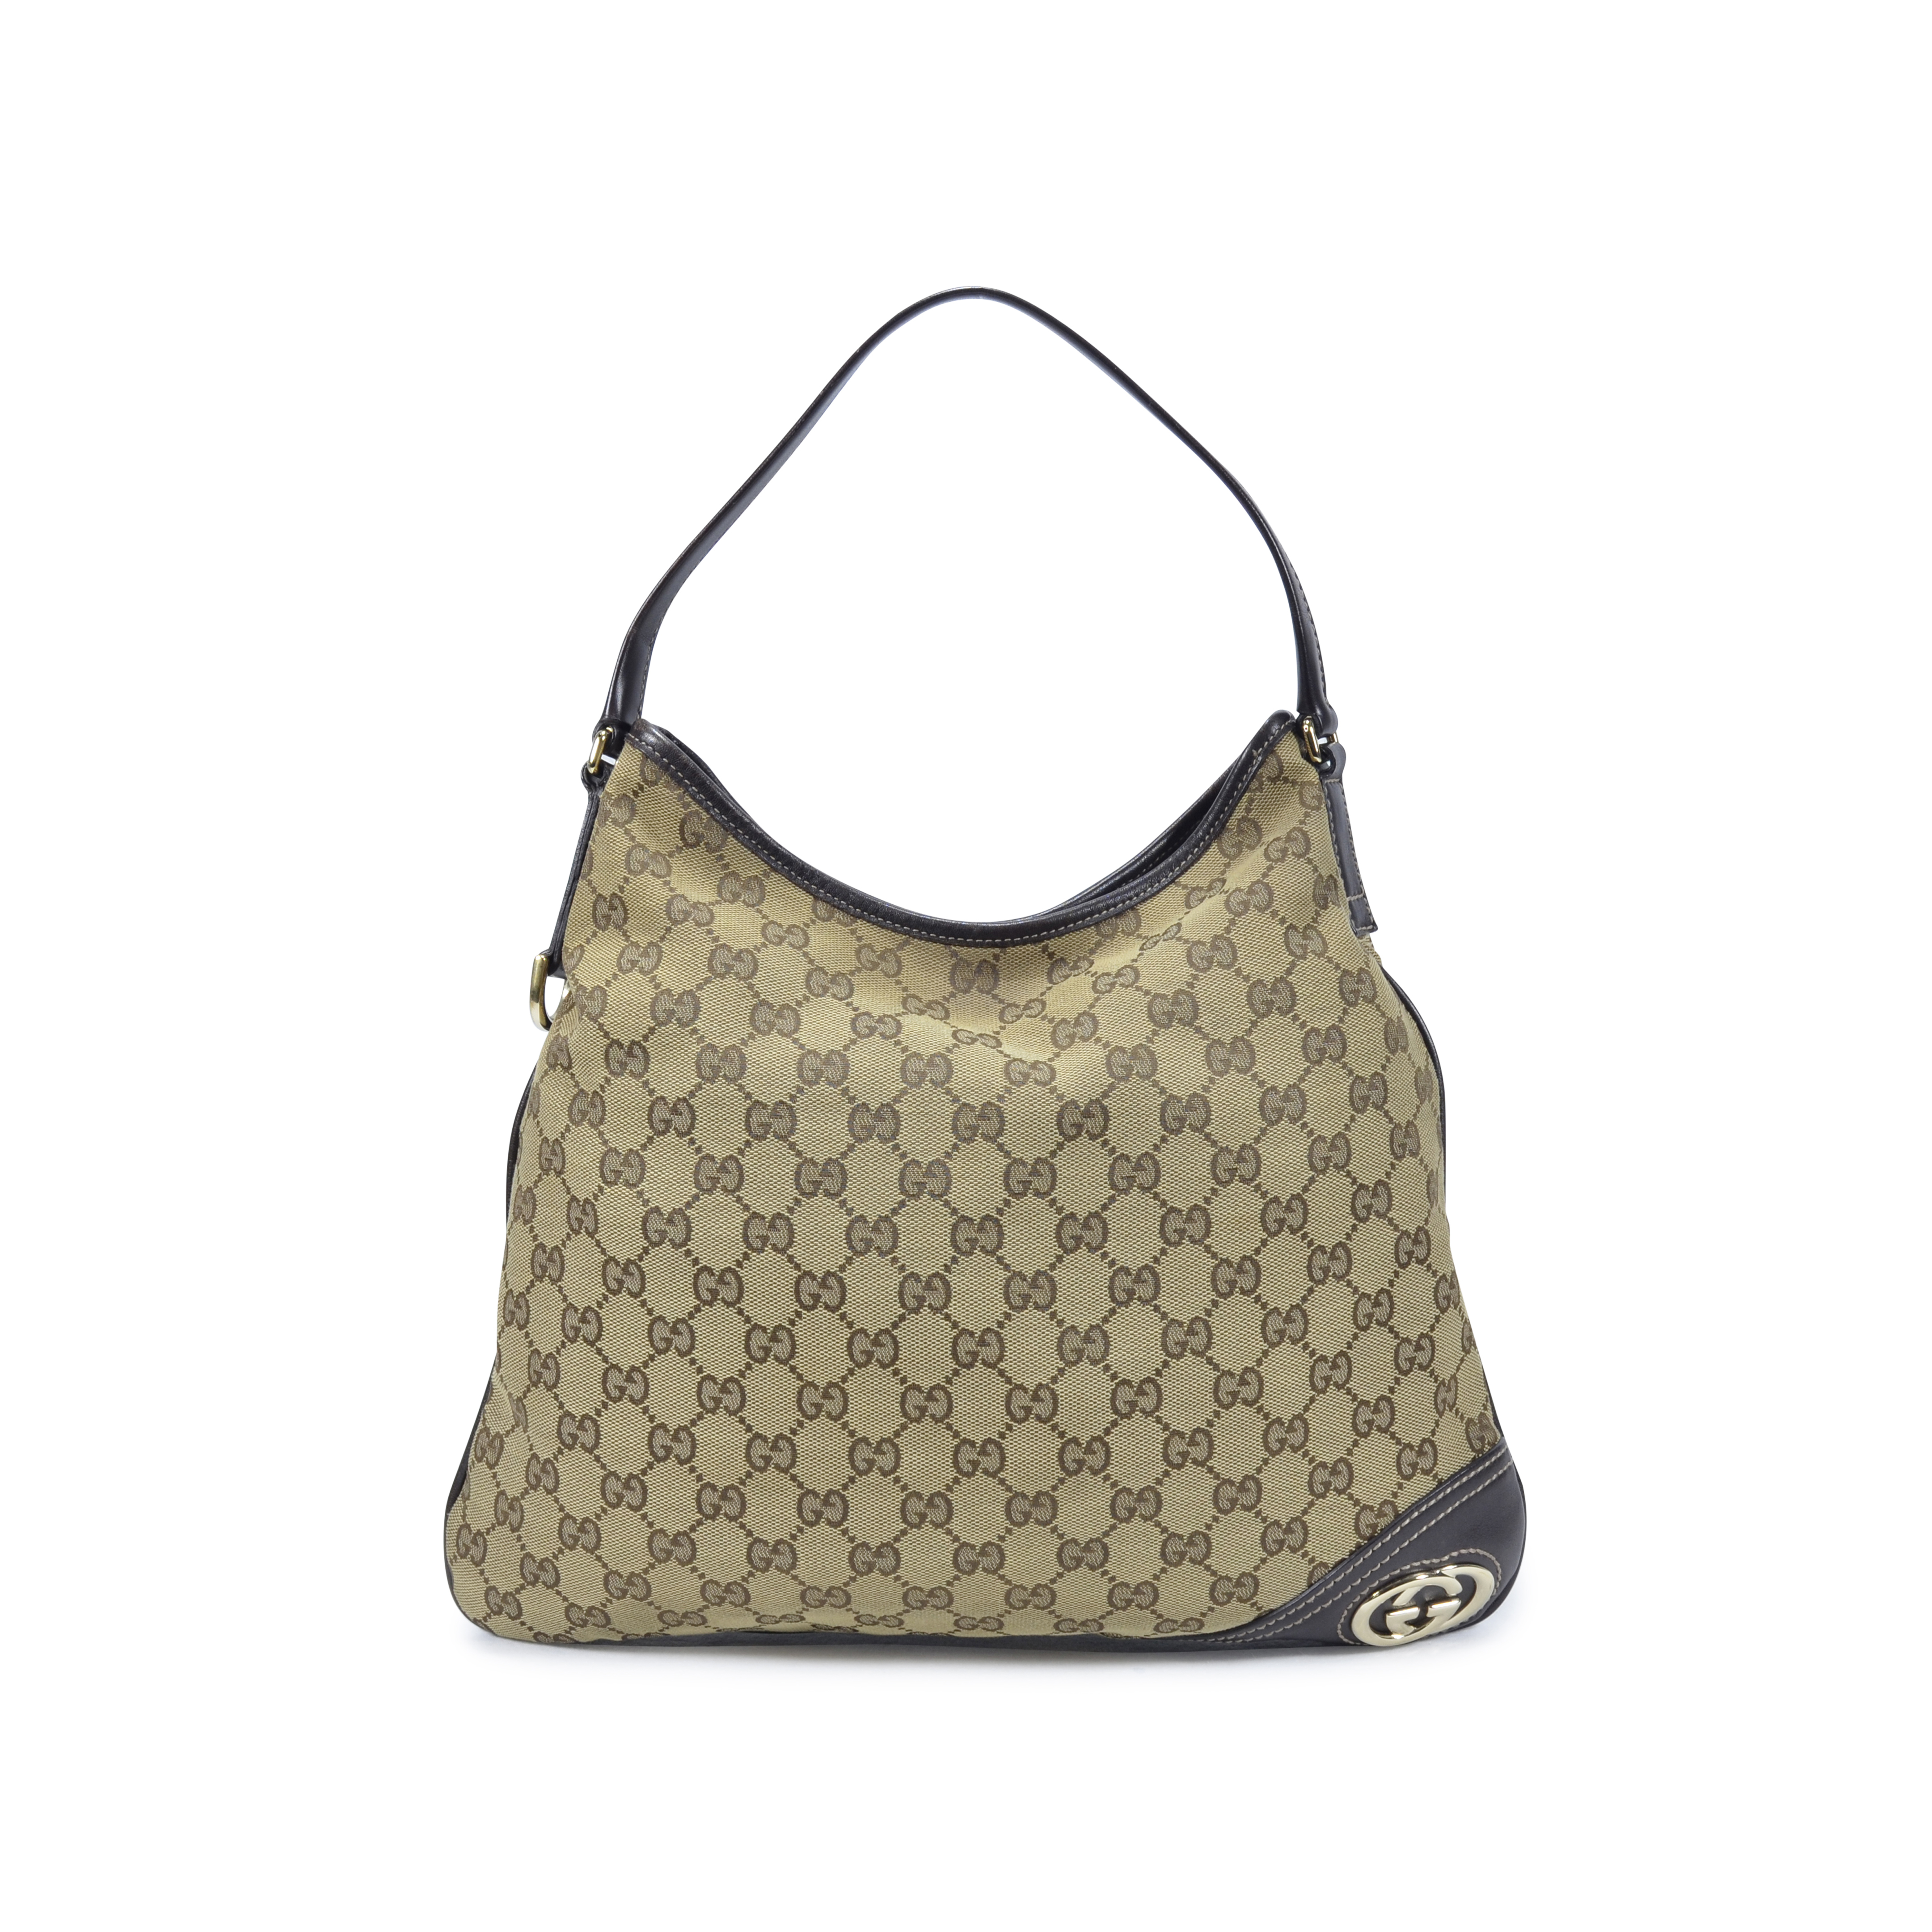 b1dd4d154ab5 Authentic Second Hand Gucci Monogram Shoulder Bag (PSS-350-00023) | THE  FIFTH COLLECTION